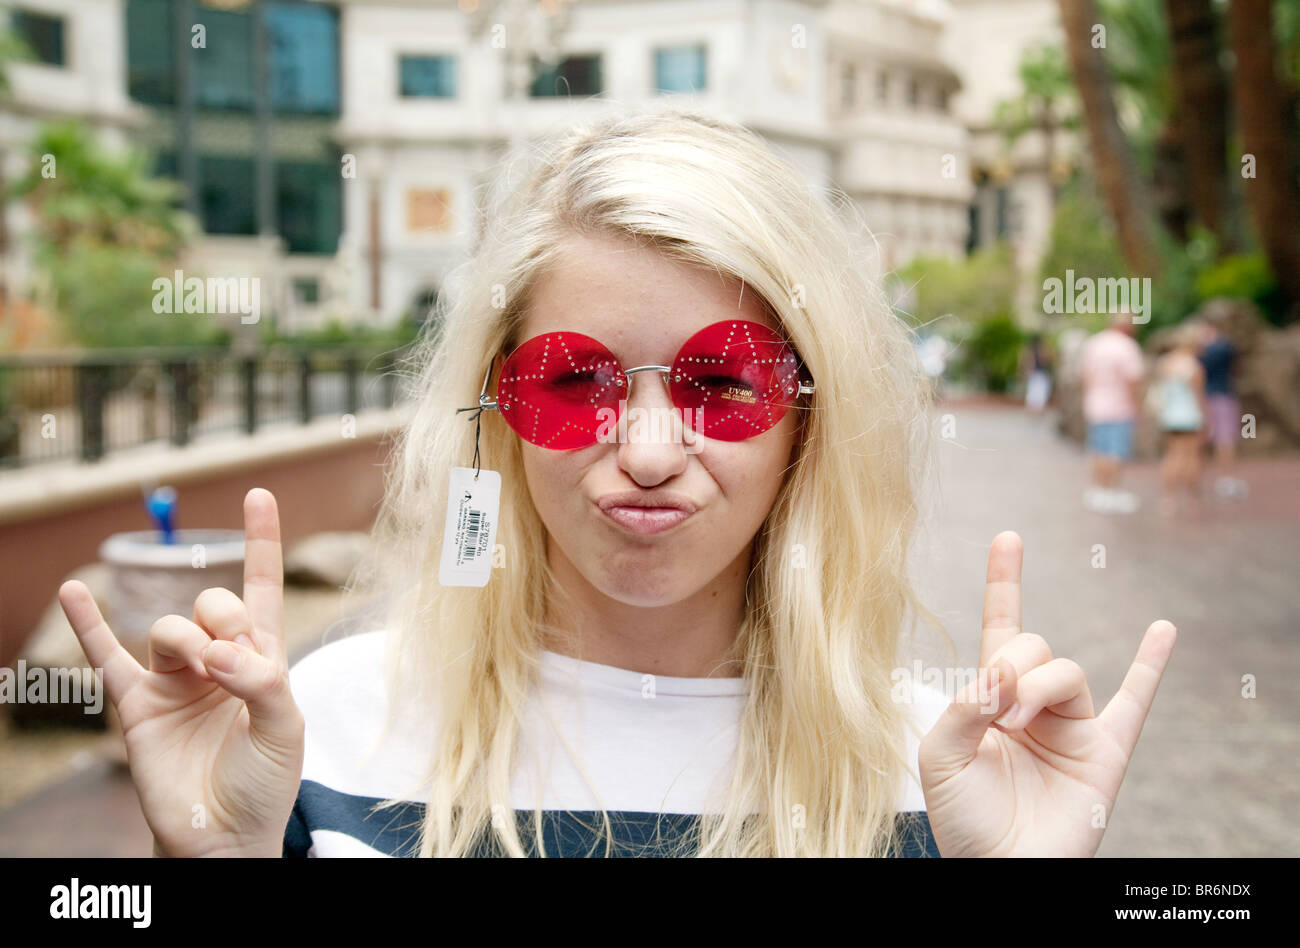 A blond teenage girl trying on a pair of rose tinted glasses, the Strip, Las Vegas USA - Stock Image